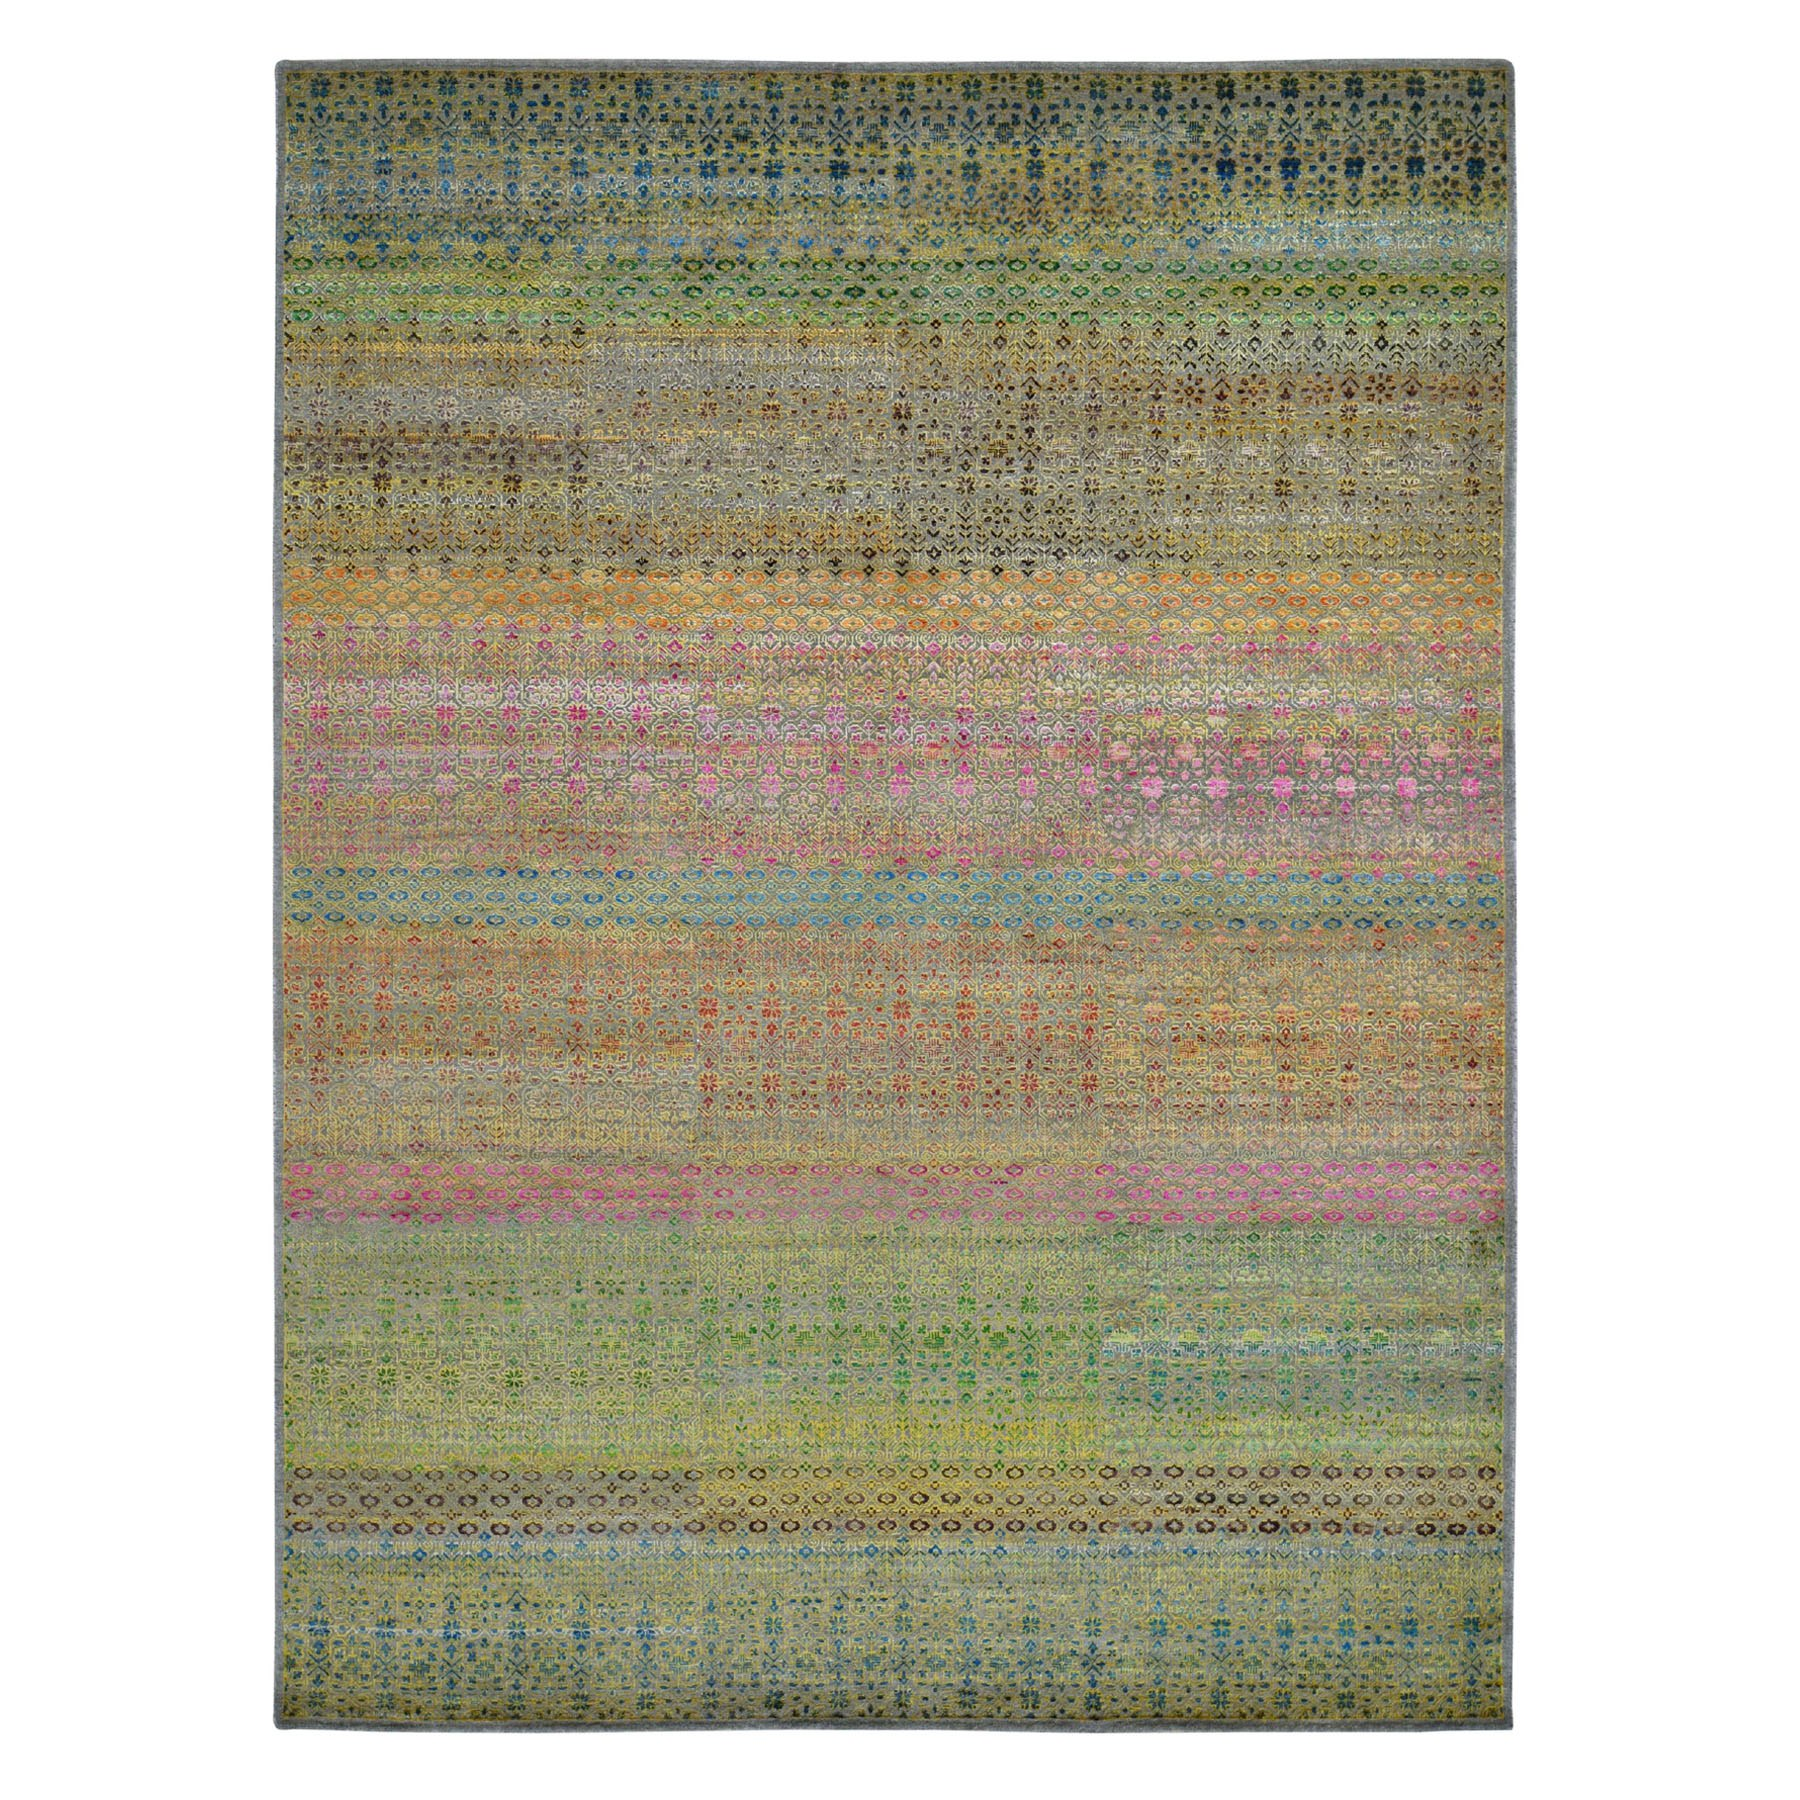 9'X12' Colorful Grass Design Sari Silk Textured Wool Modern Hand Knotted Oriental Rug moad7e8d